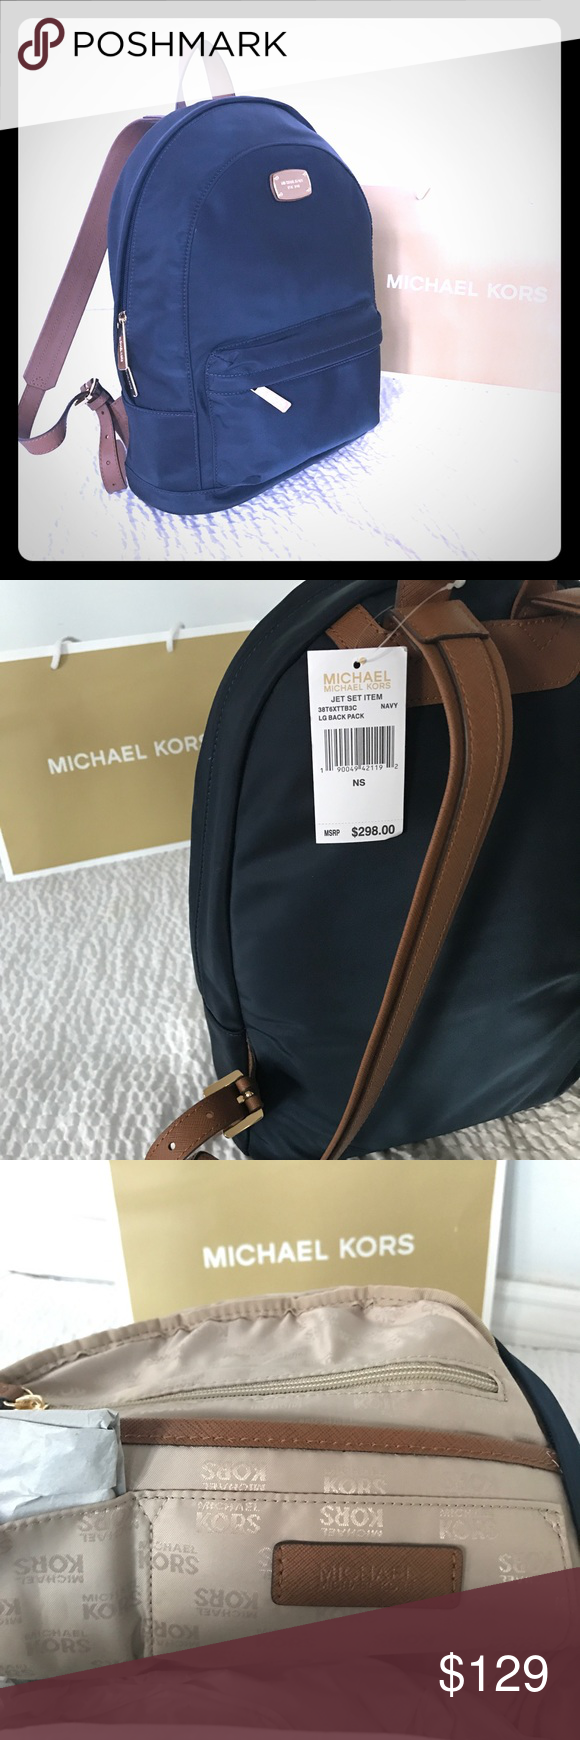 1e68d305e1a3 New Authentic MK large Jet Set backpack New Authentic lightweight easy to  clean Michael Kors Jet set backpack in navy with leather adjustable long  shoulder ...